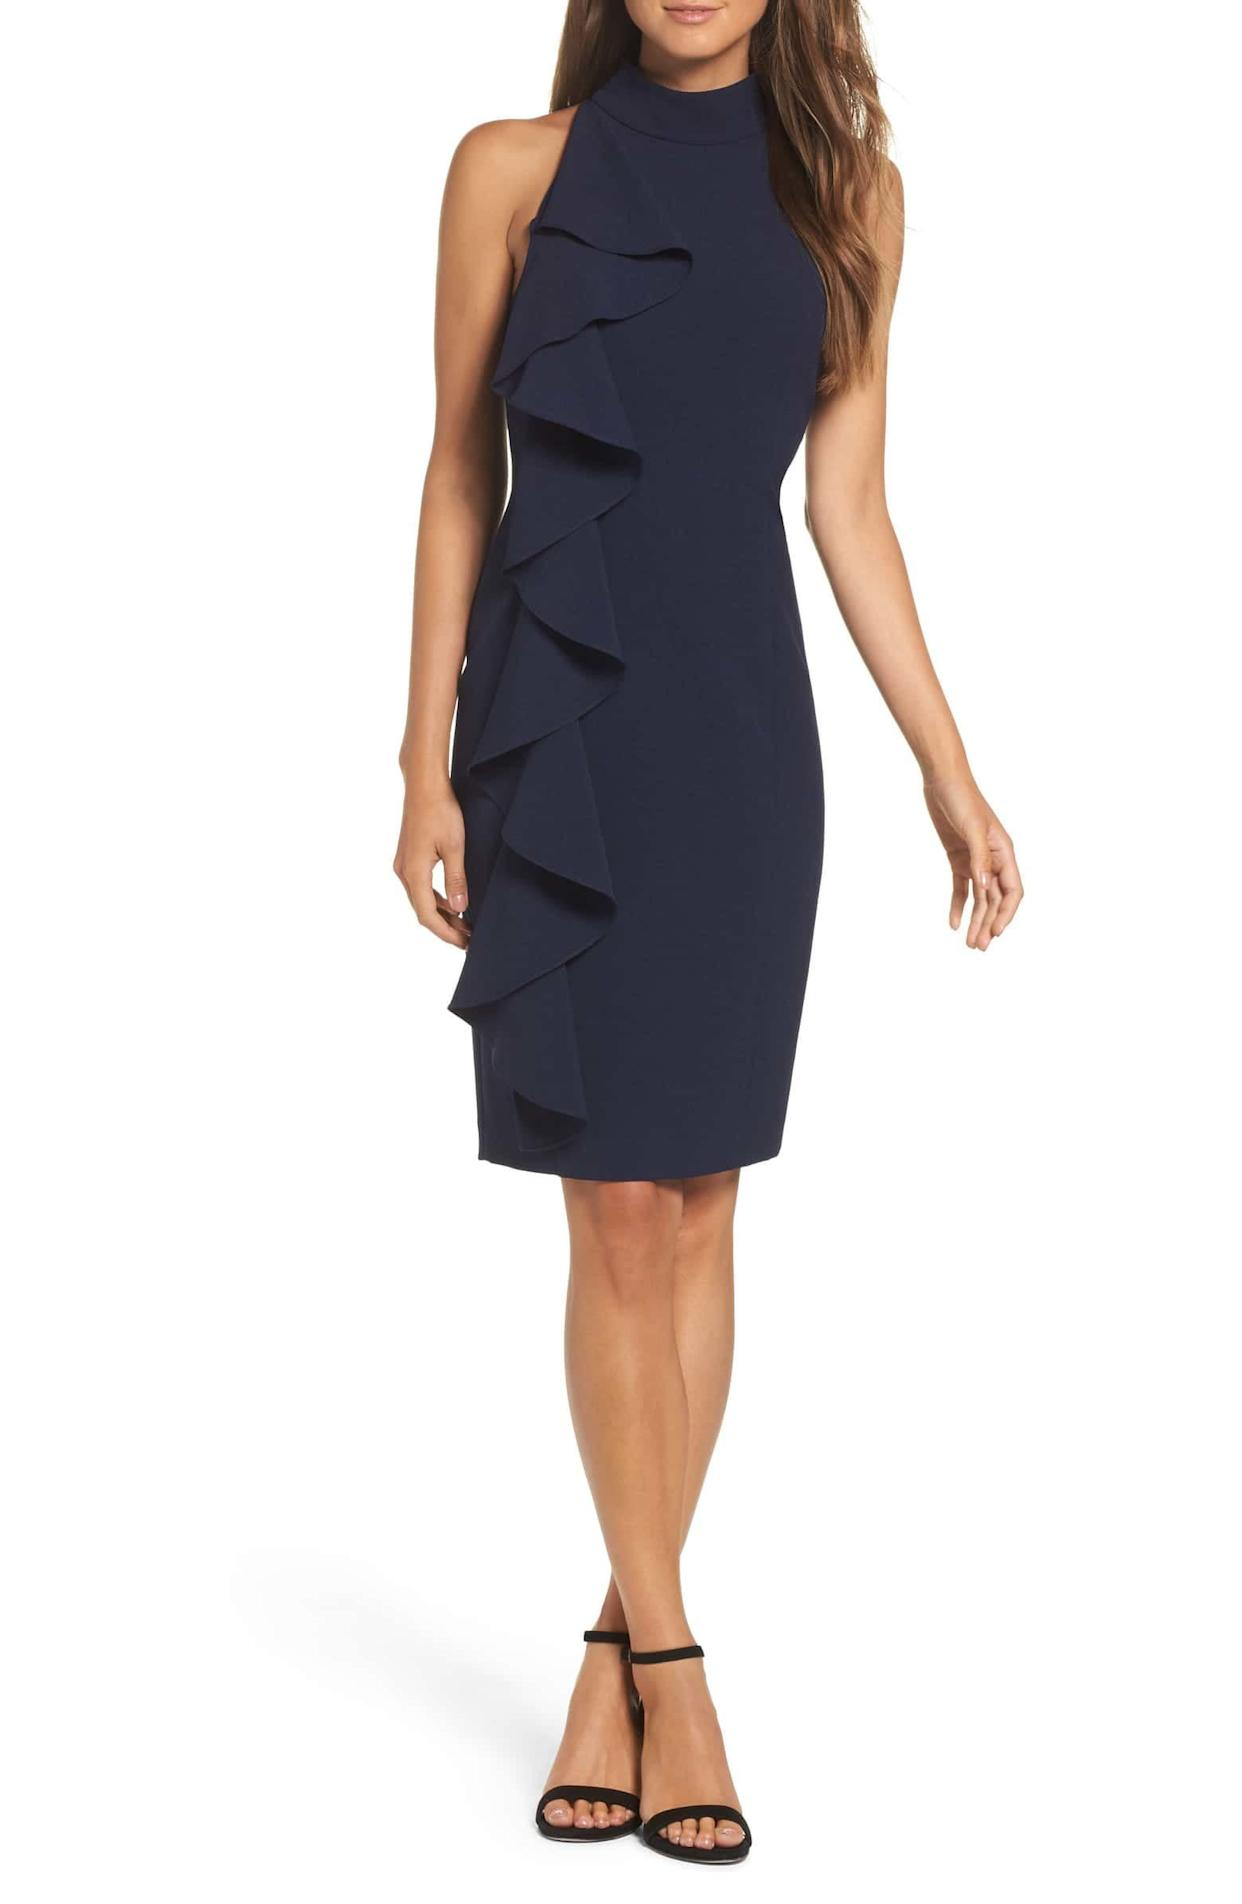 "<strong><a href=""https://shop.nordstrom.com/s/eliza-j-ruffle-sheath-dress/4726686"" rel=""nofollow noopener"" target=""_blank"" data-ylk=""slk:Eliza J ruffle sheath dress"" class=""link rapid-noclick-resp"">Eliza J ruffle sheath dress</a>, $138</strong>"